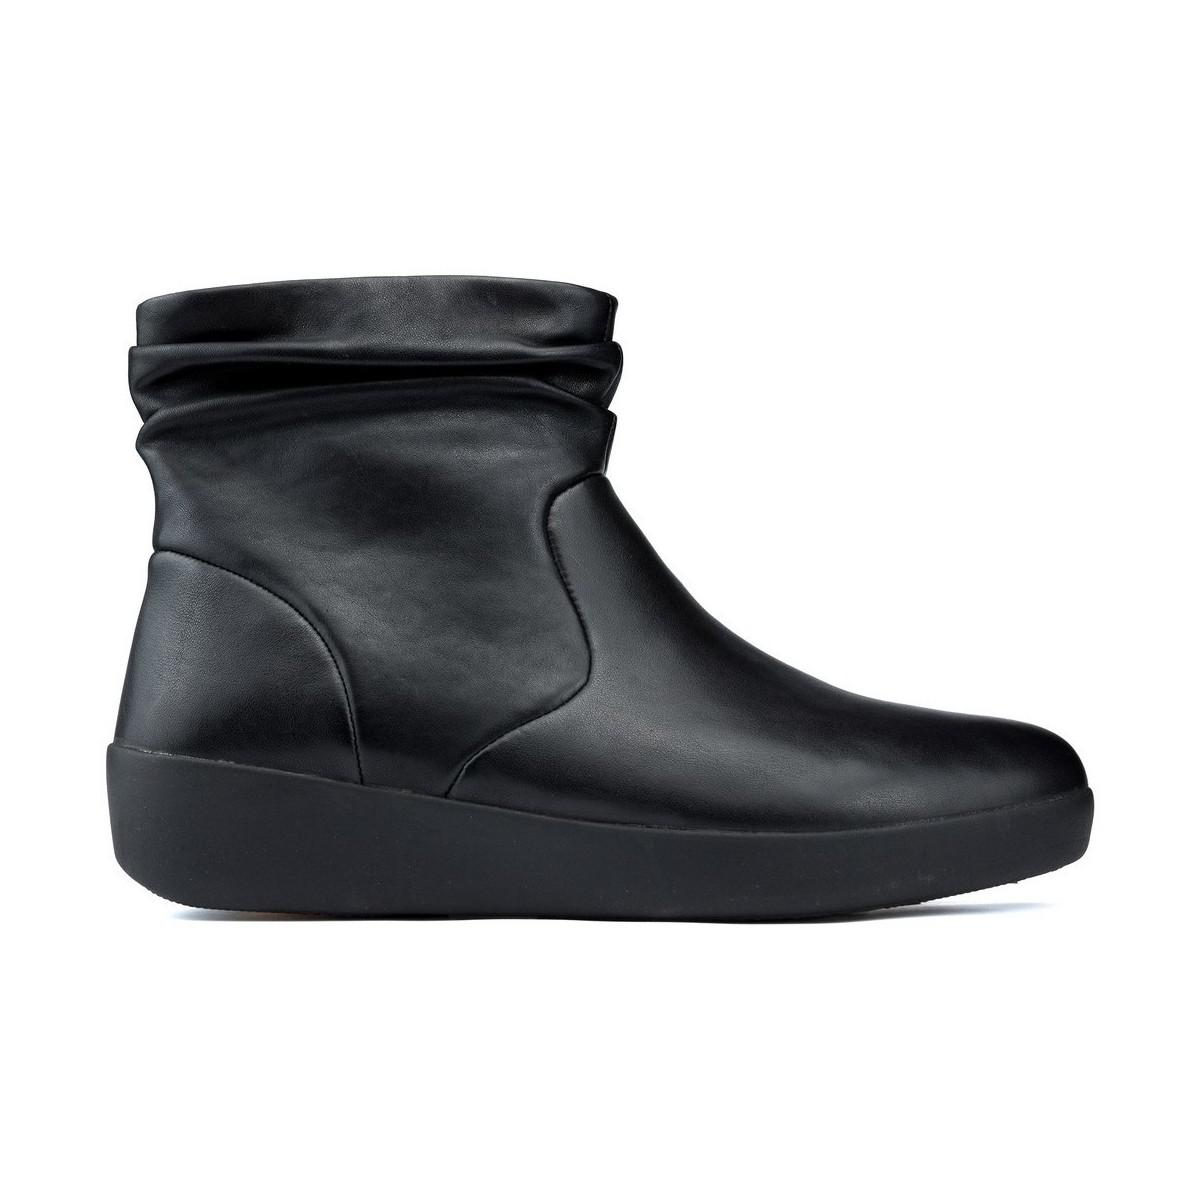 d789b04ce495 Fitflop Skatebootie Leather Boots Women s Mid Boots In Black in ...